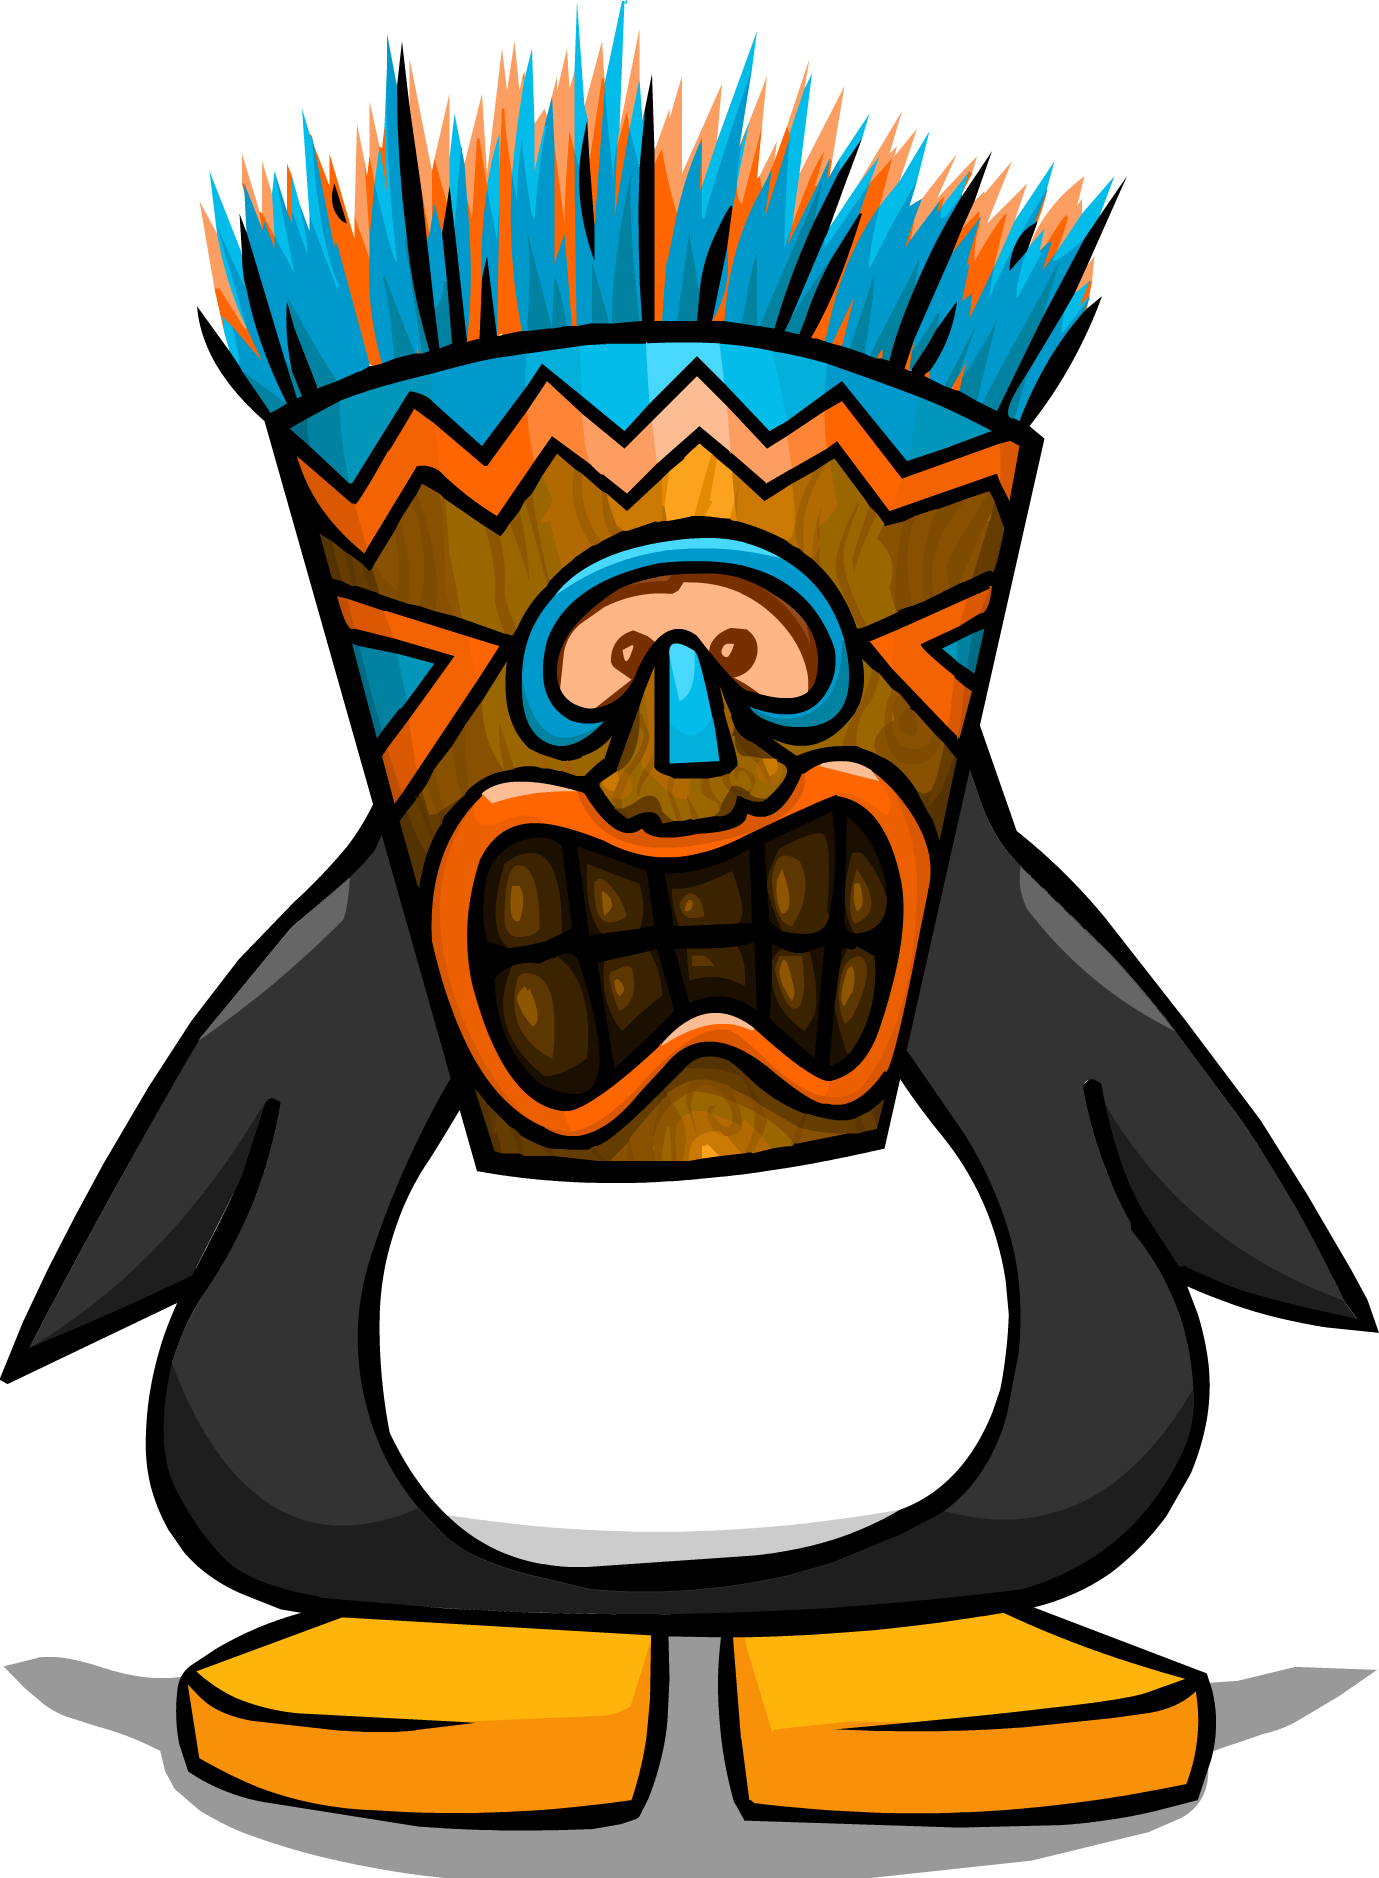 Tiki mask png. Image blue from a